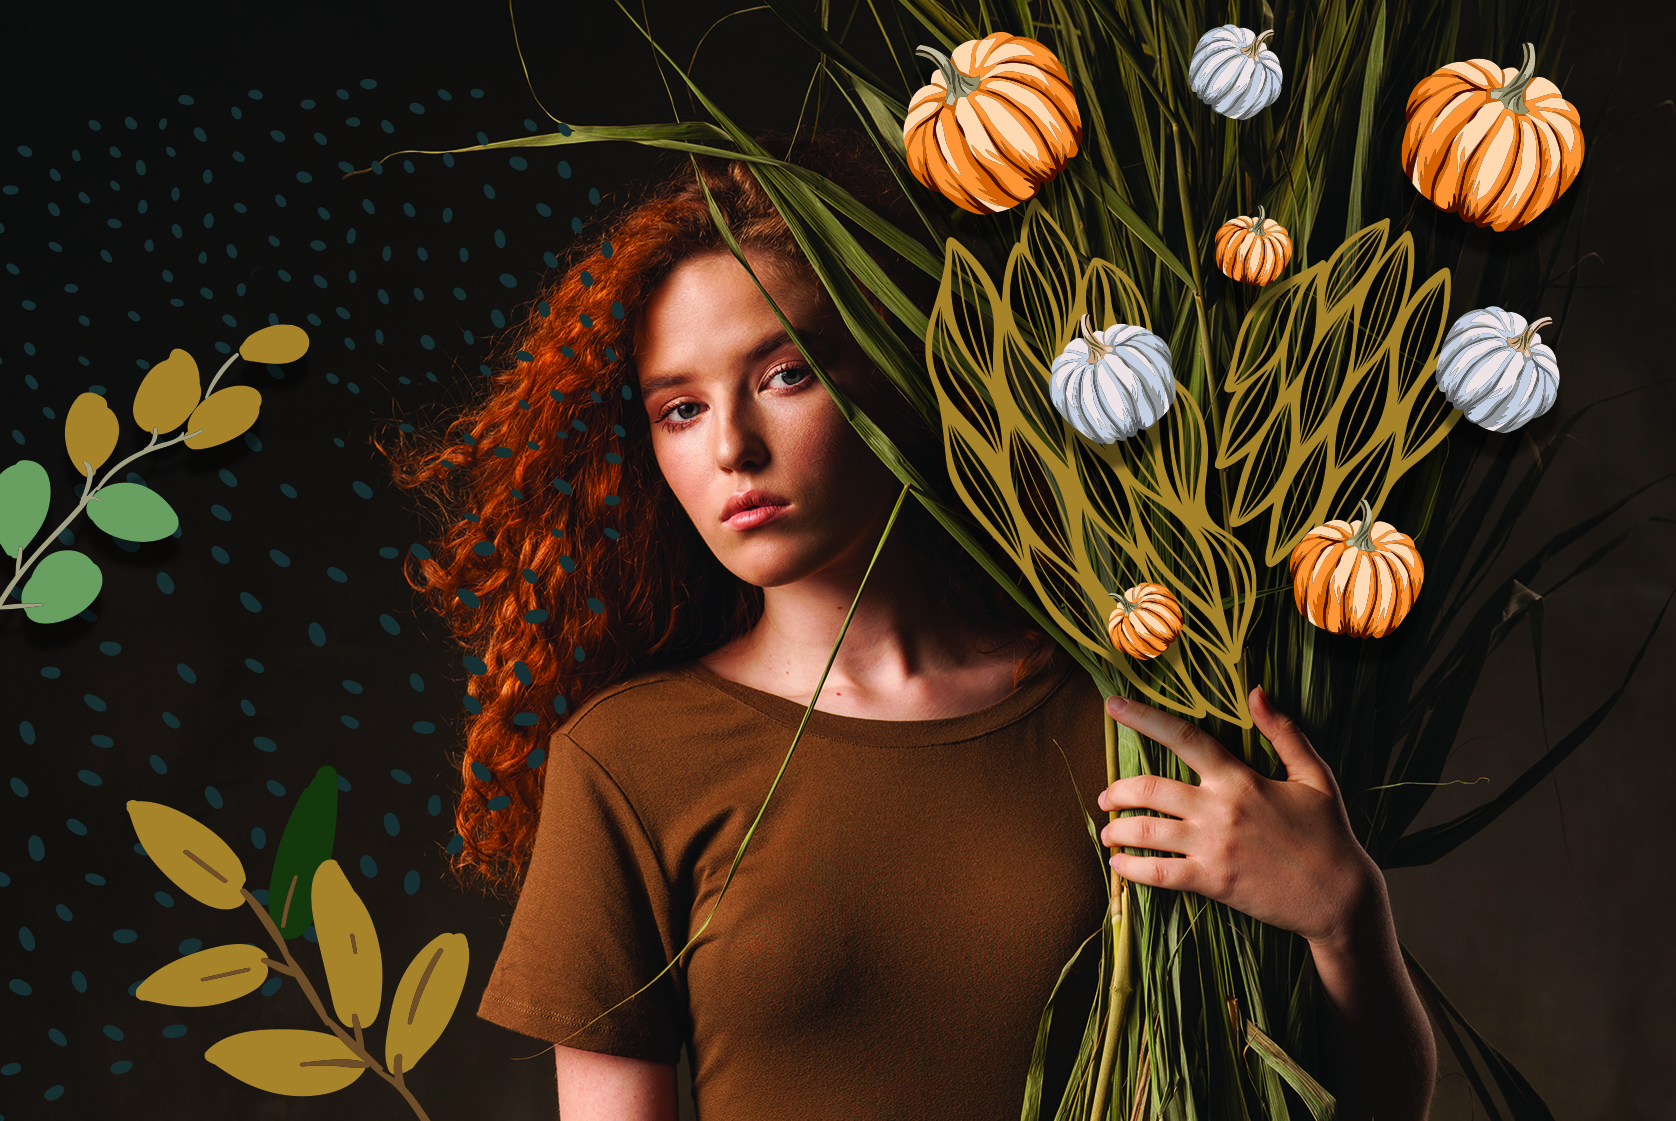 Fall photo with girl and pumpkins